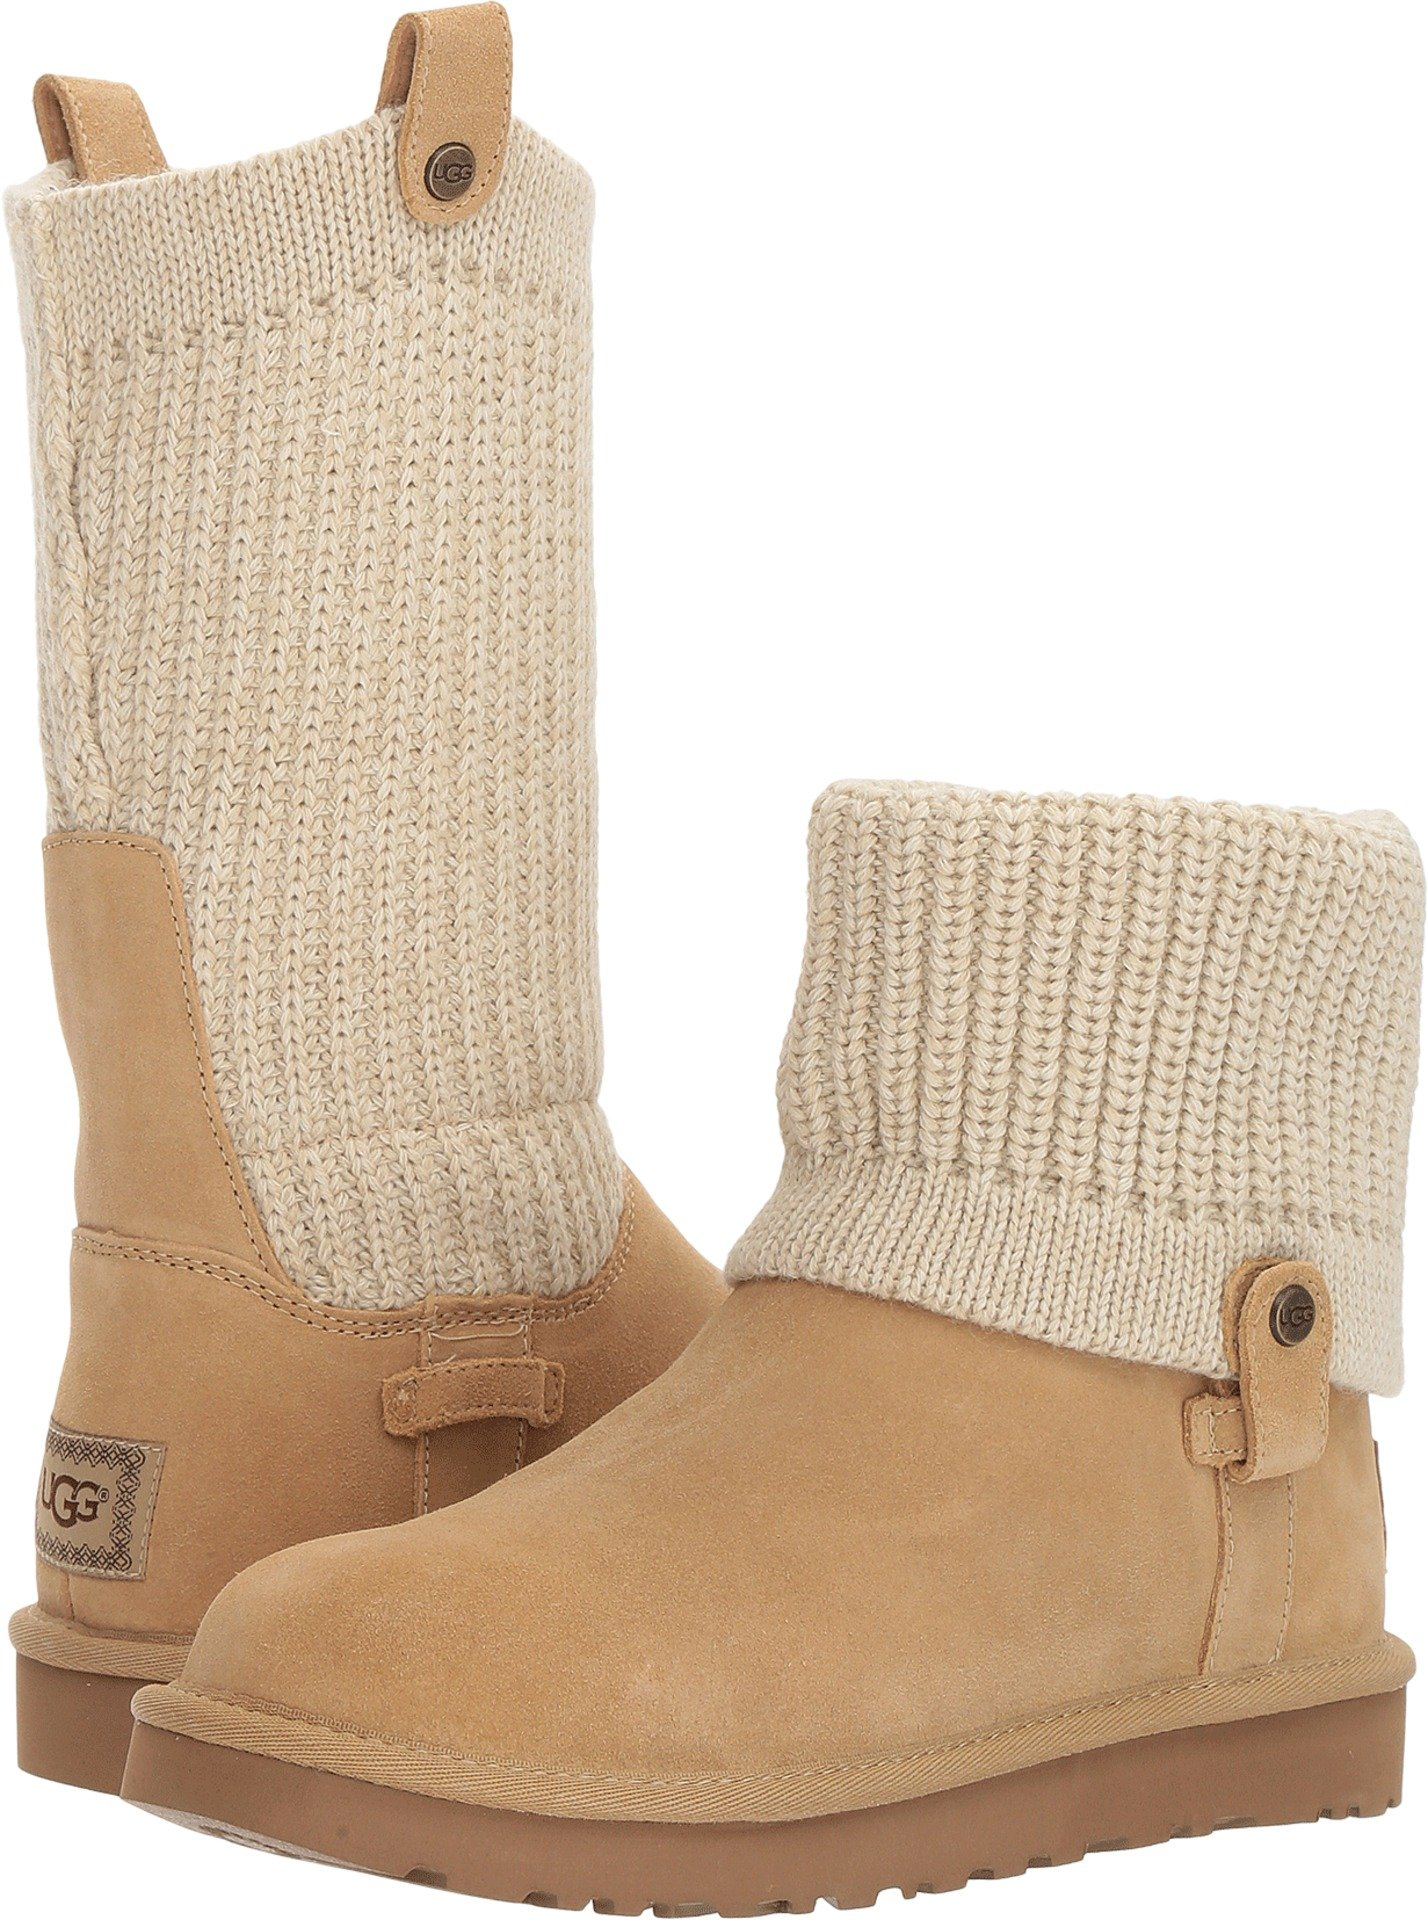 UGG Womens Saela Cream 11 B - Medium by UGG